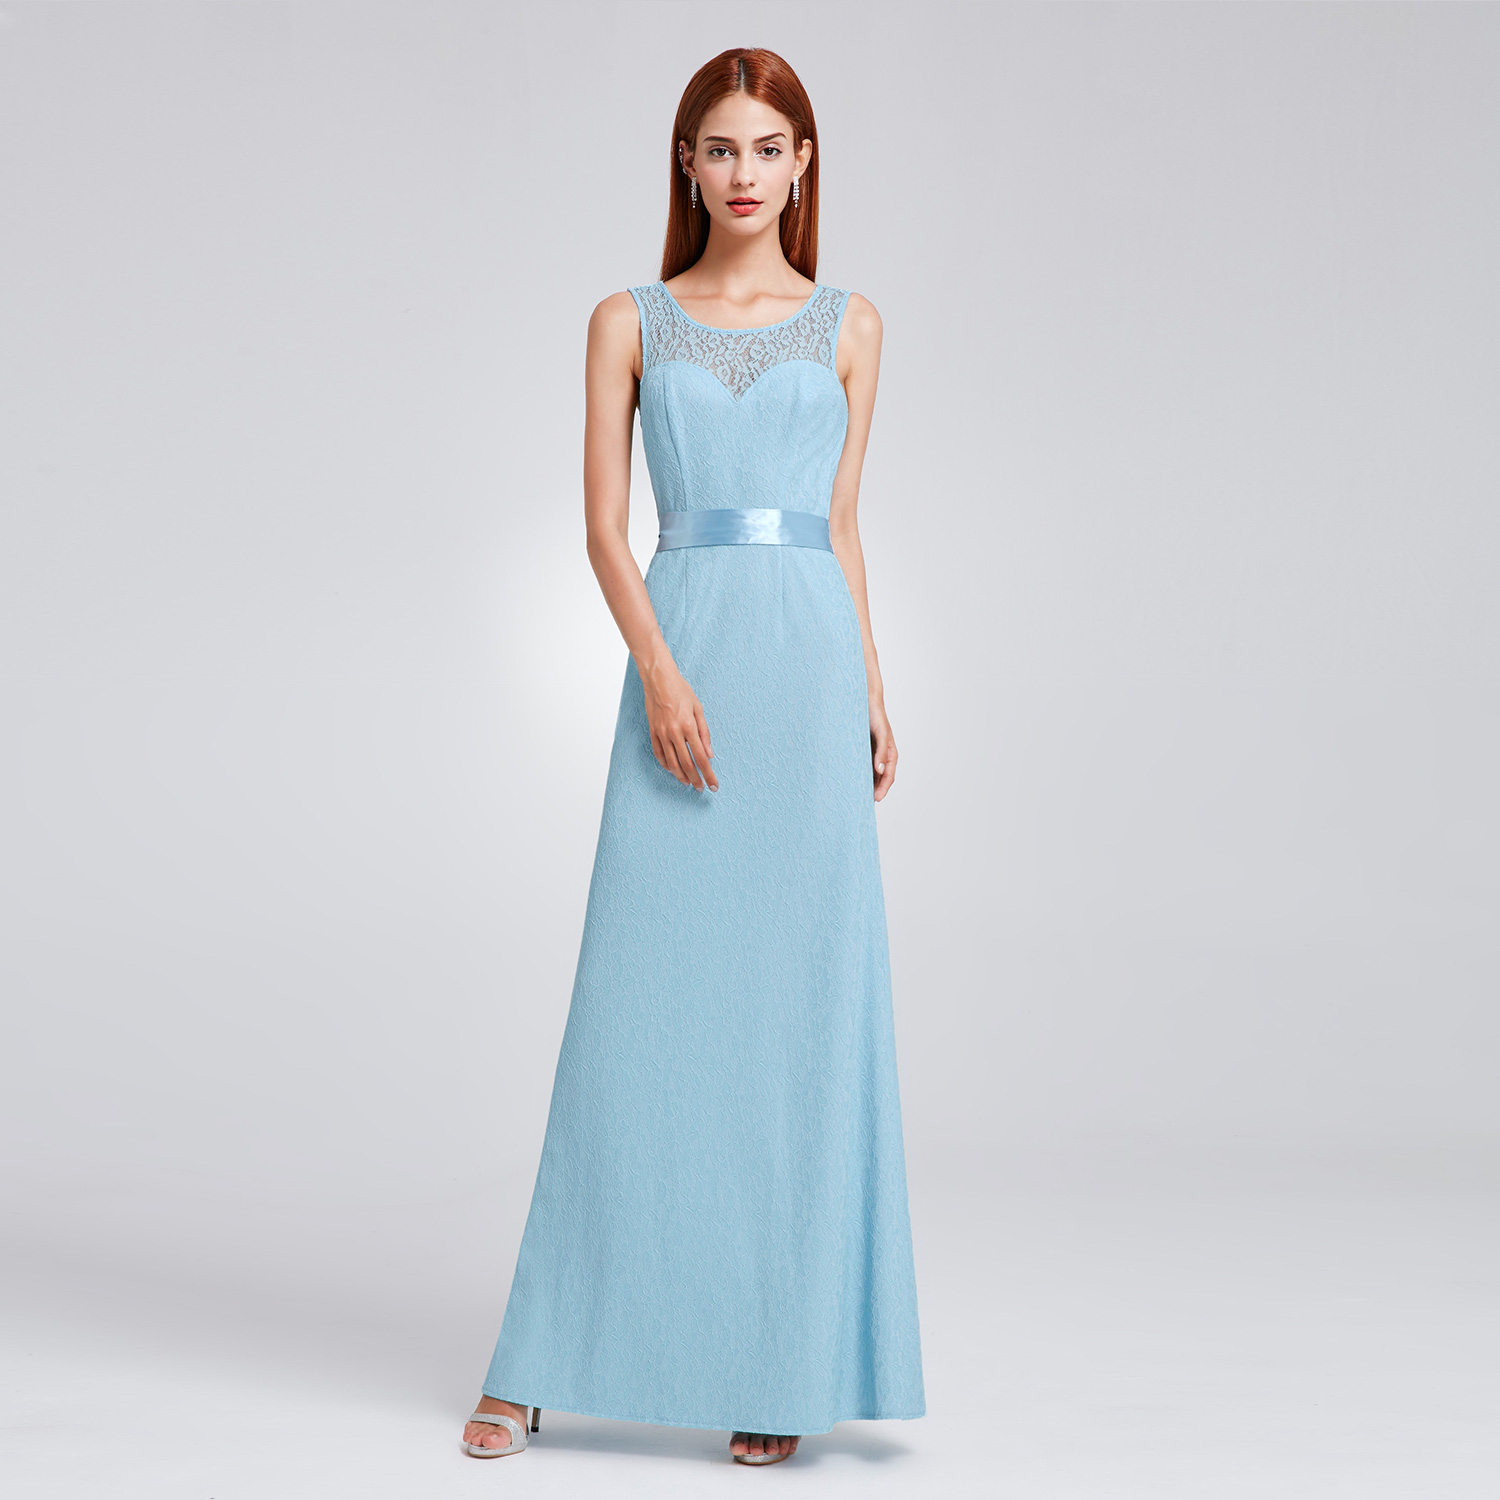 US Women Formal Wedding Bridesmaid Dress Long Evening Party 08938 ...